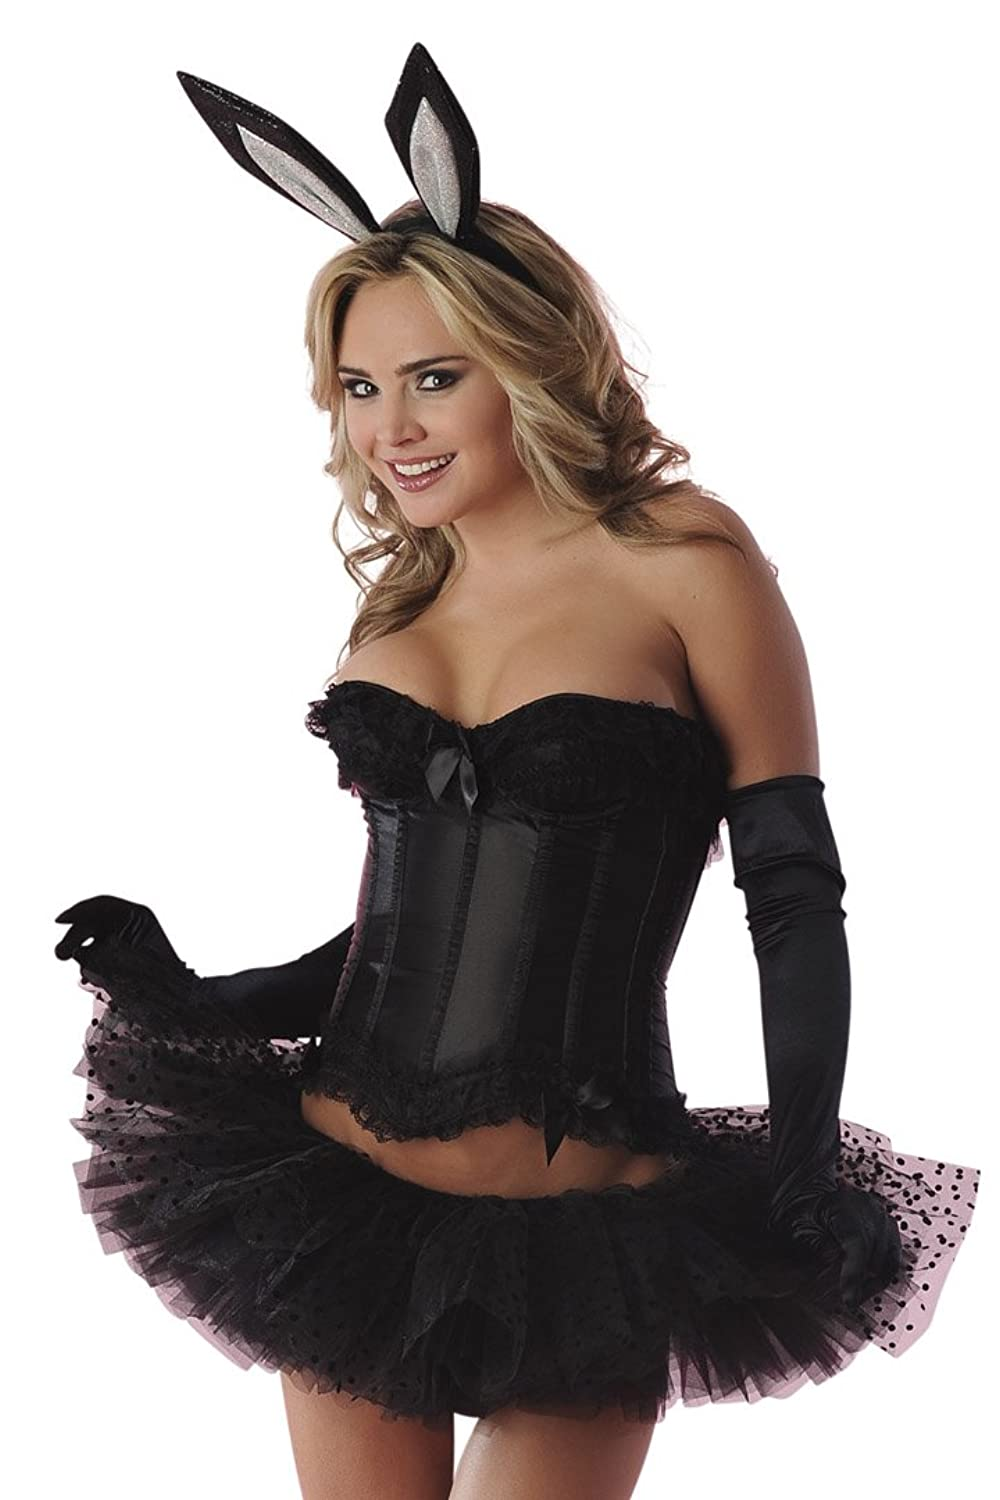 3173529881f Sexy adult bunny costume for ladies. Features a bow detailed corset.  Includes tutu and fun bunny ears. Comes with pin on tail and gloves